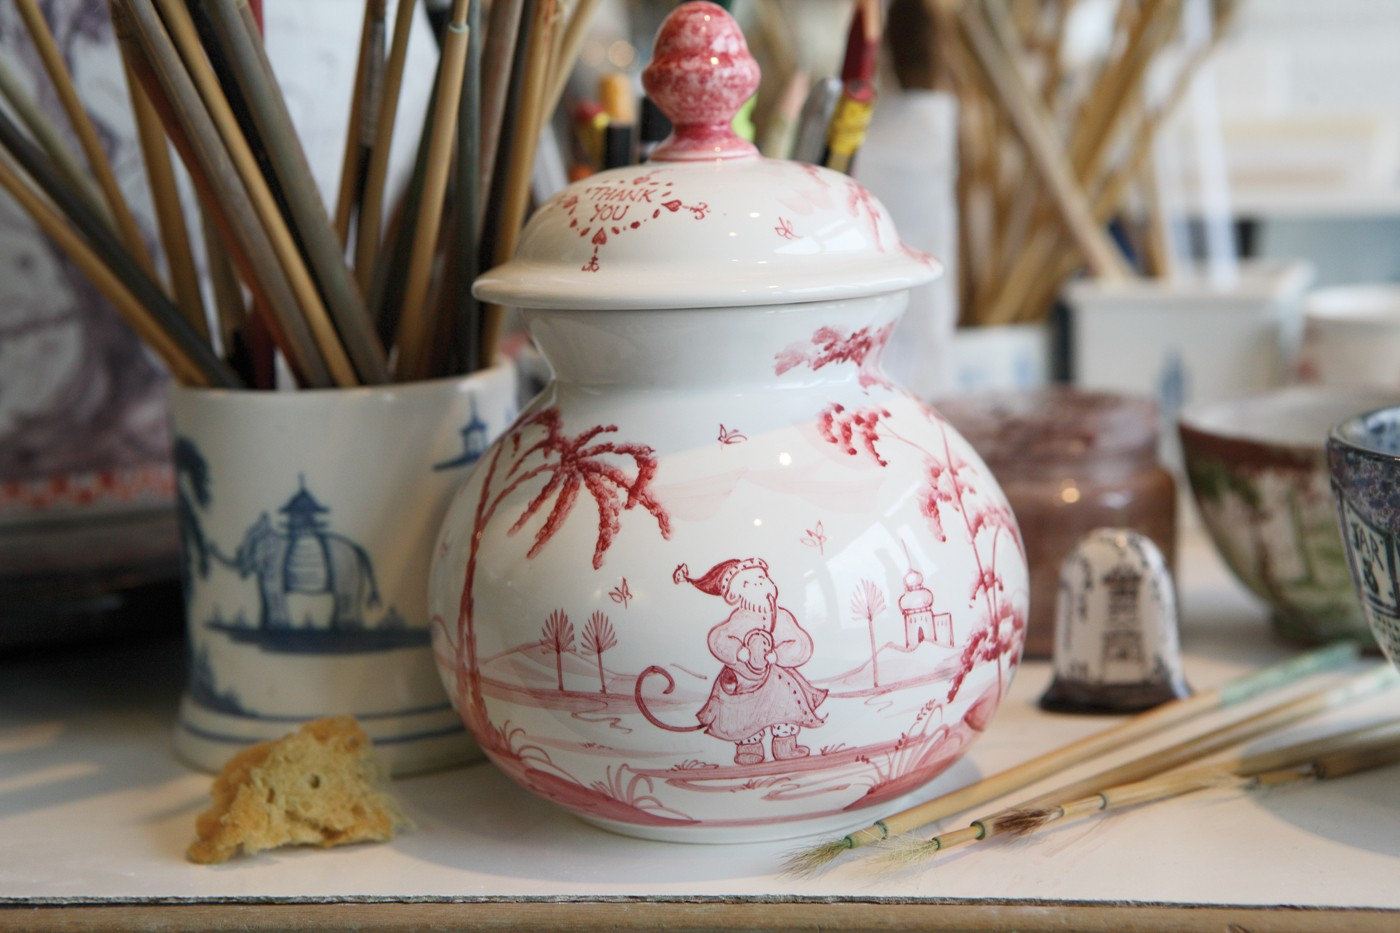 A hand-painted, tin-glazed earthenware piece by Deborah Sears of Isis Ceramics